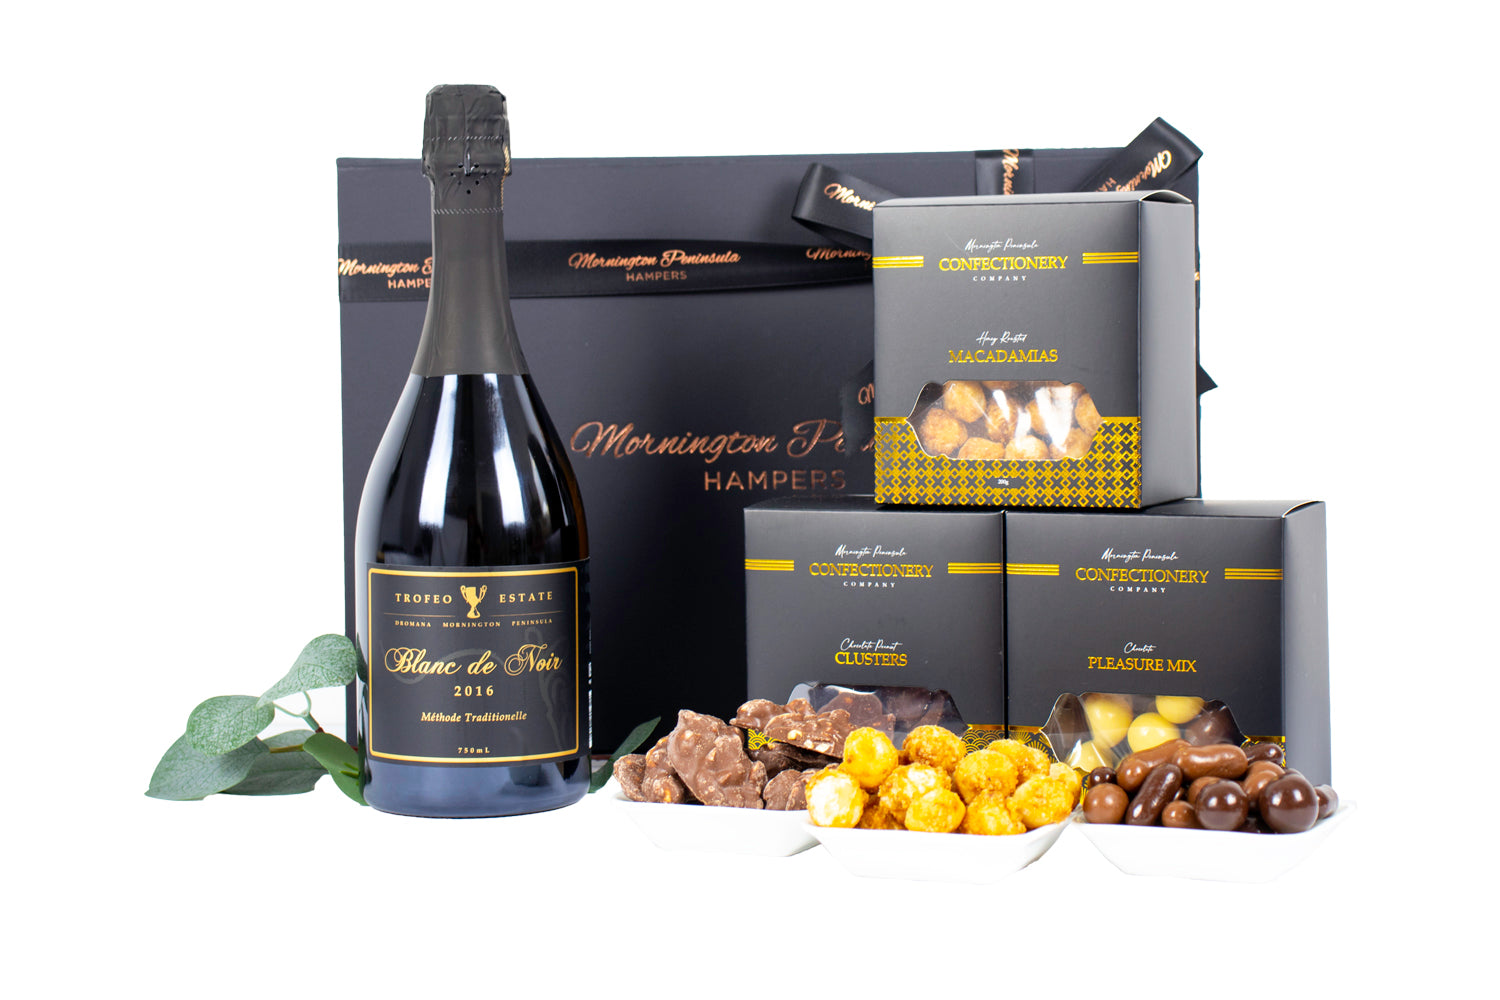 Celebration Hamper - Mornington Peninsula Hampers